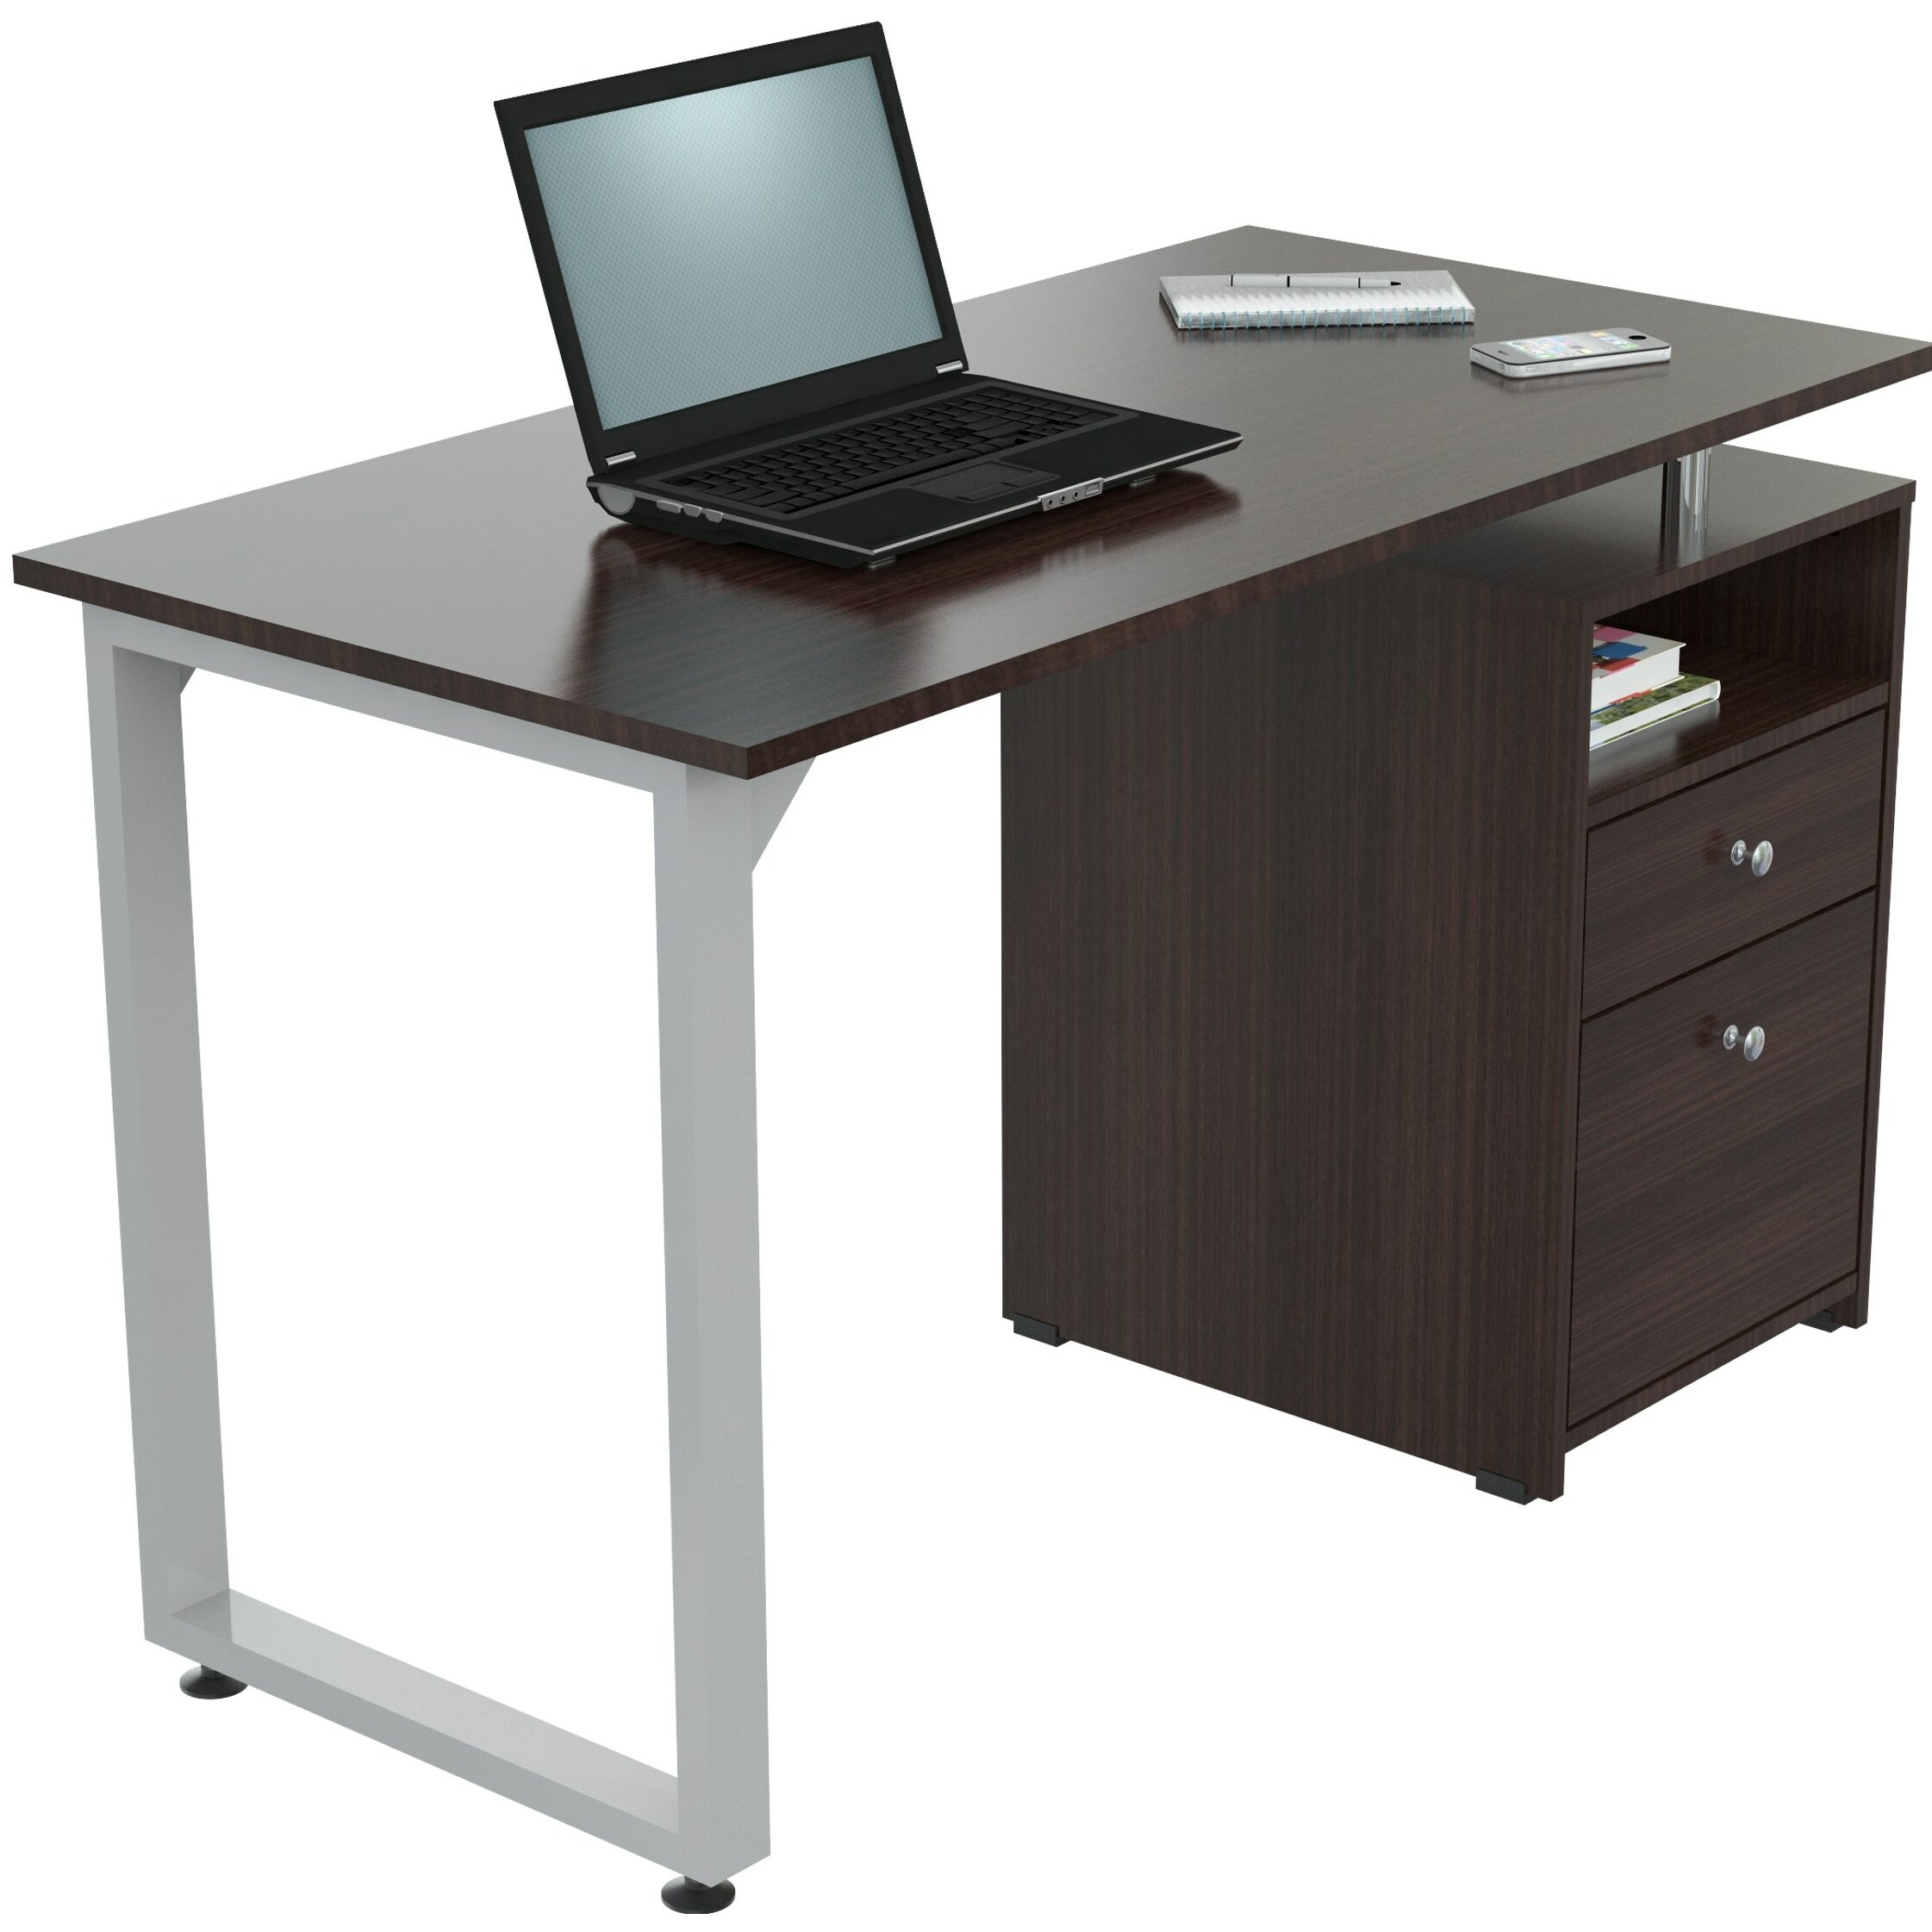 Inval Inval Computer Desk With 2 Drawers In Brown